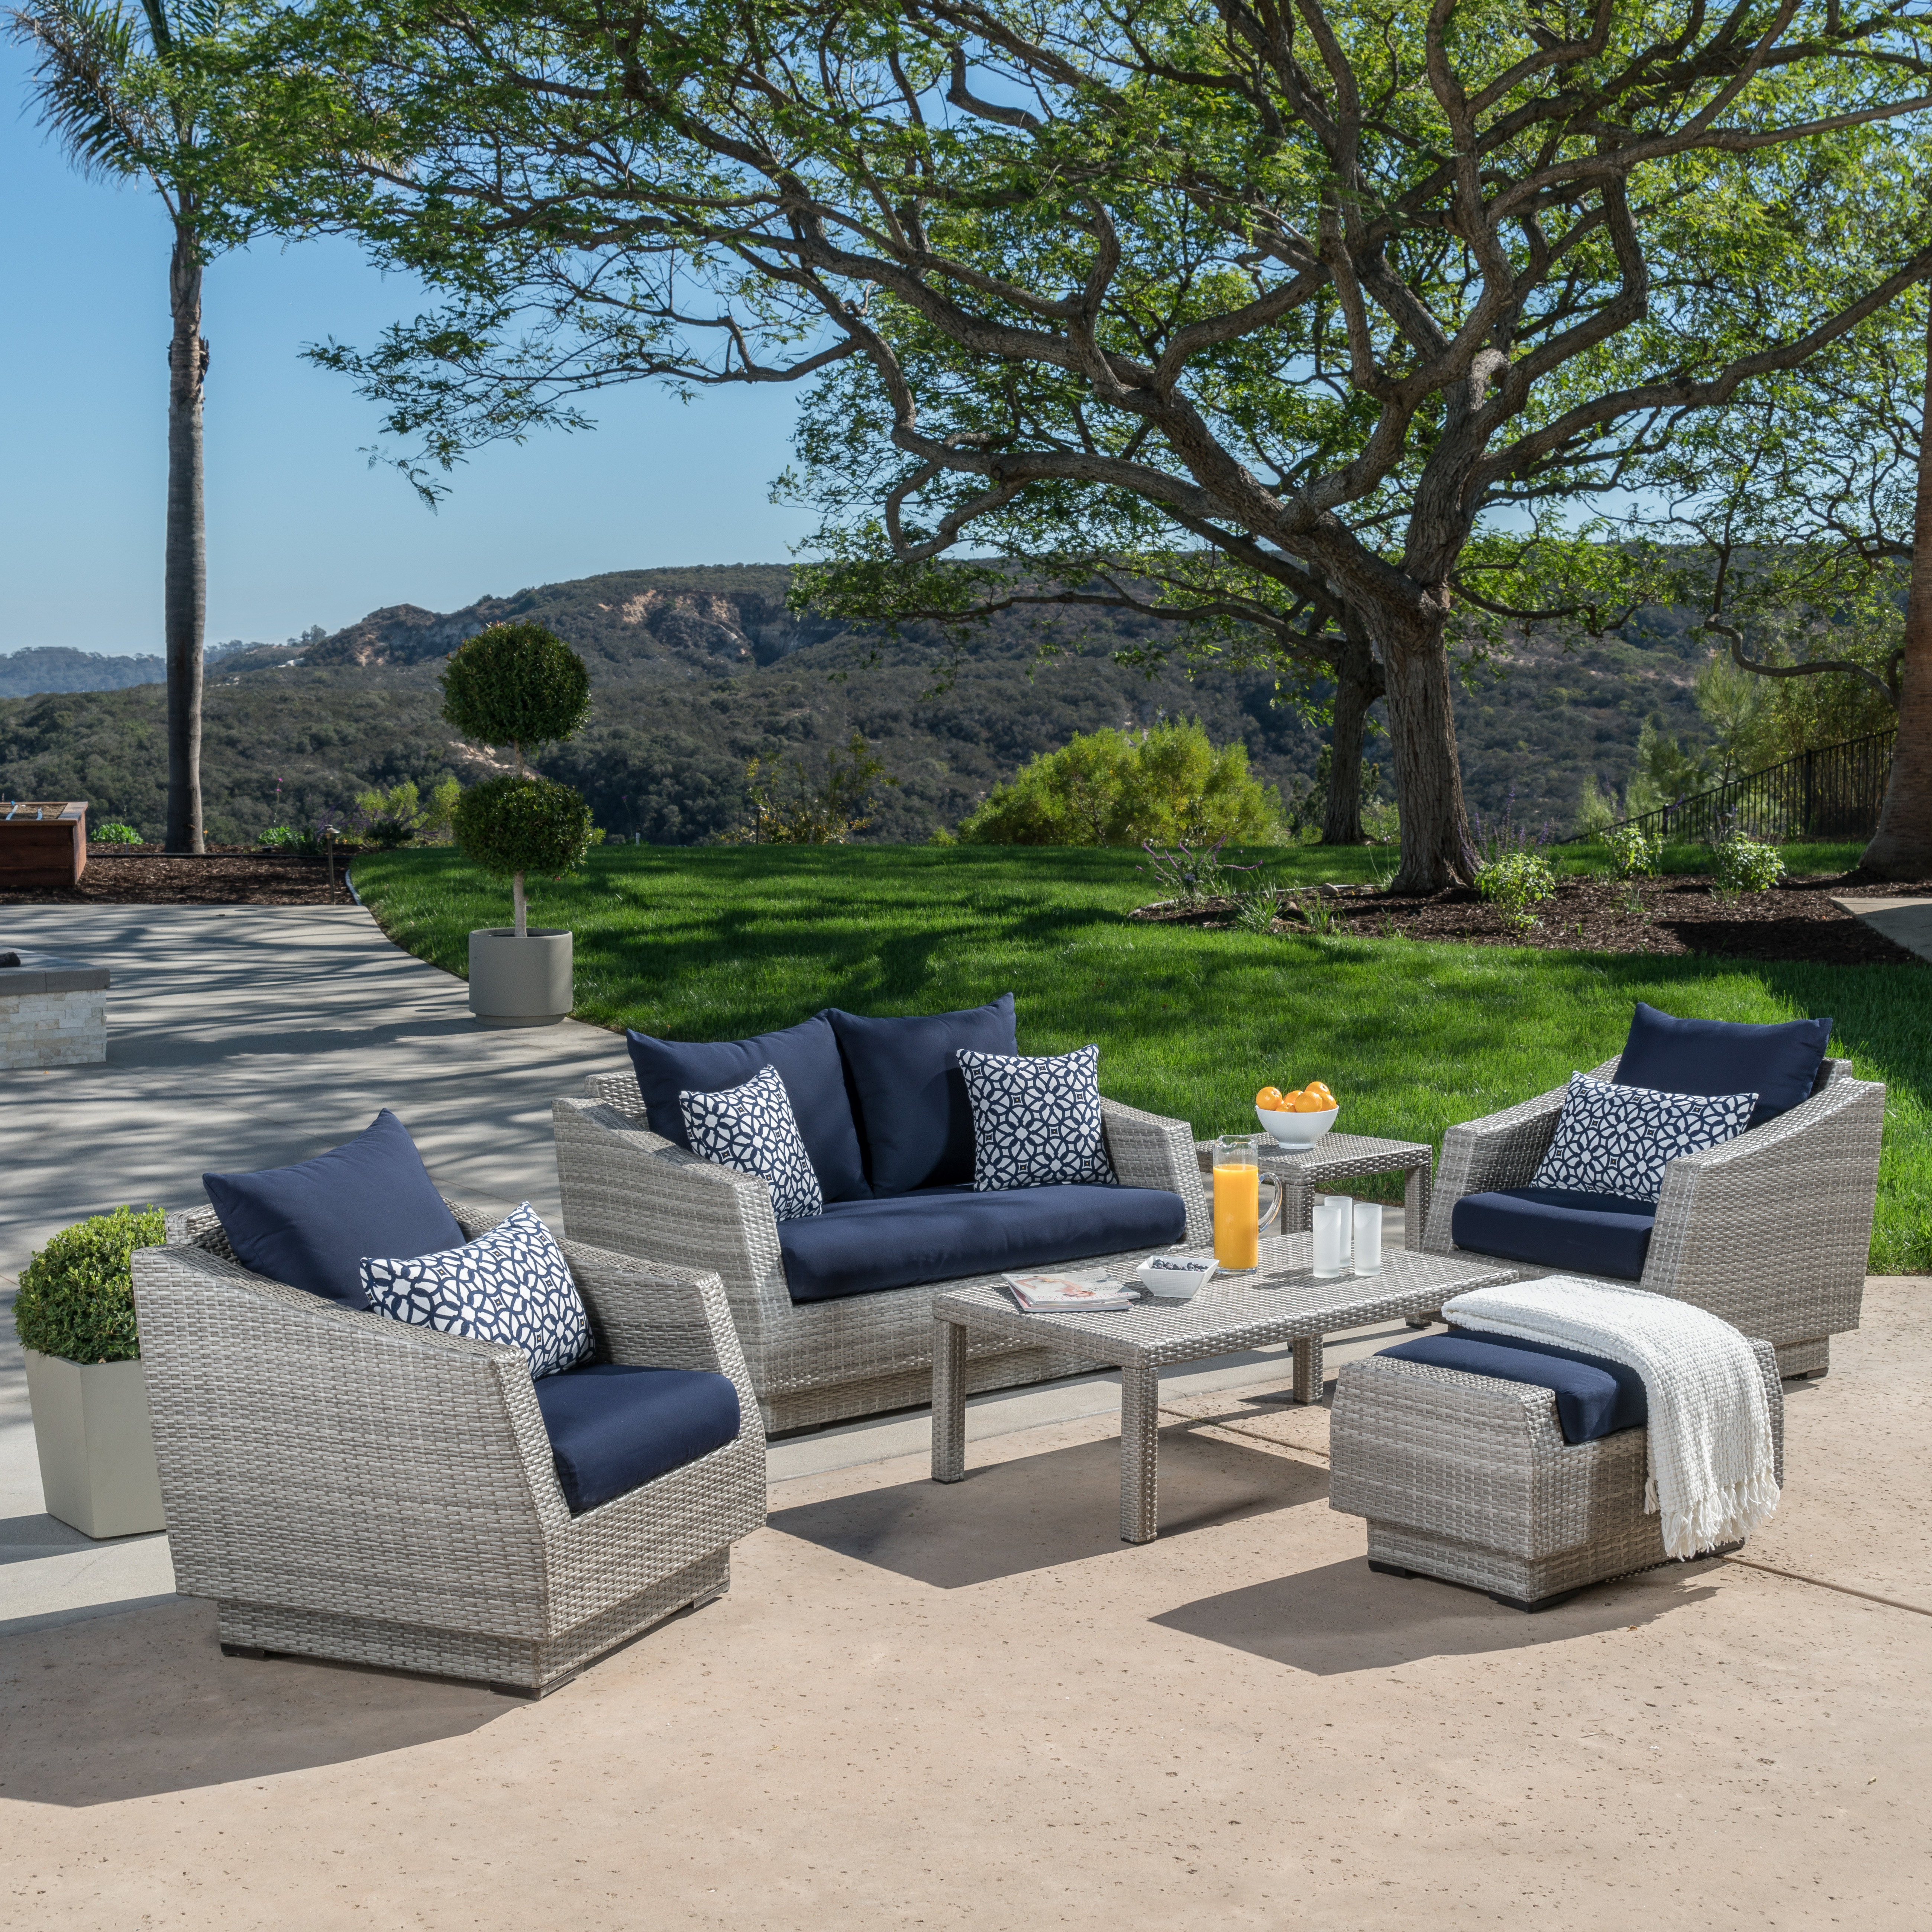 Castelli Patio Sofas With Sunbrella Cushions With Famous Castelli 6 Piece Sofa Set With Sunbrella Cushions (View 9 of 20)